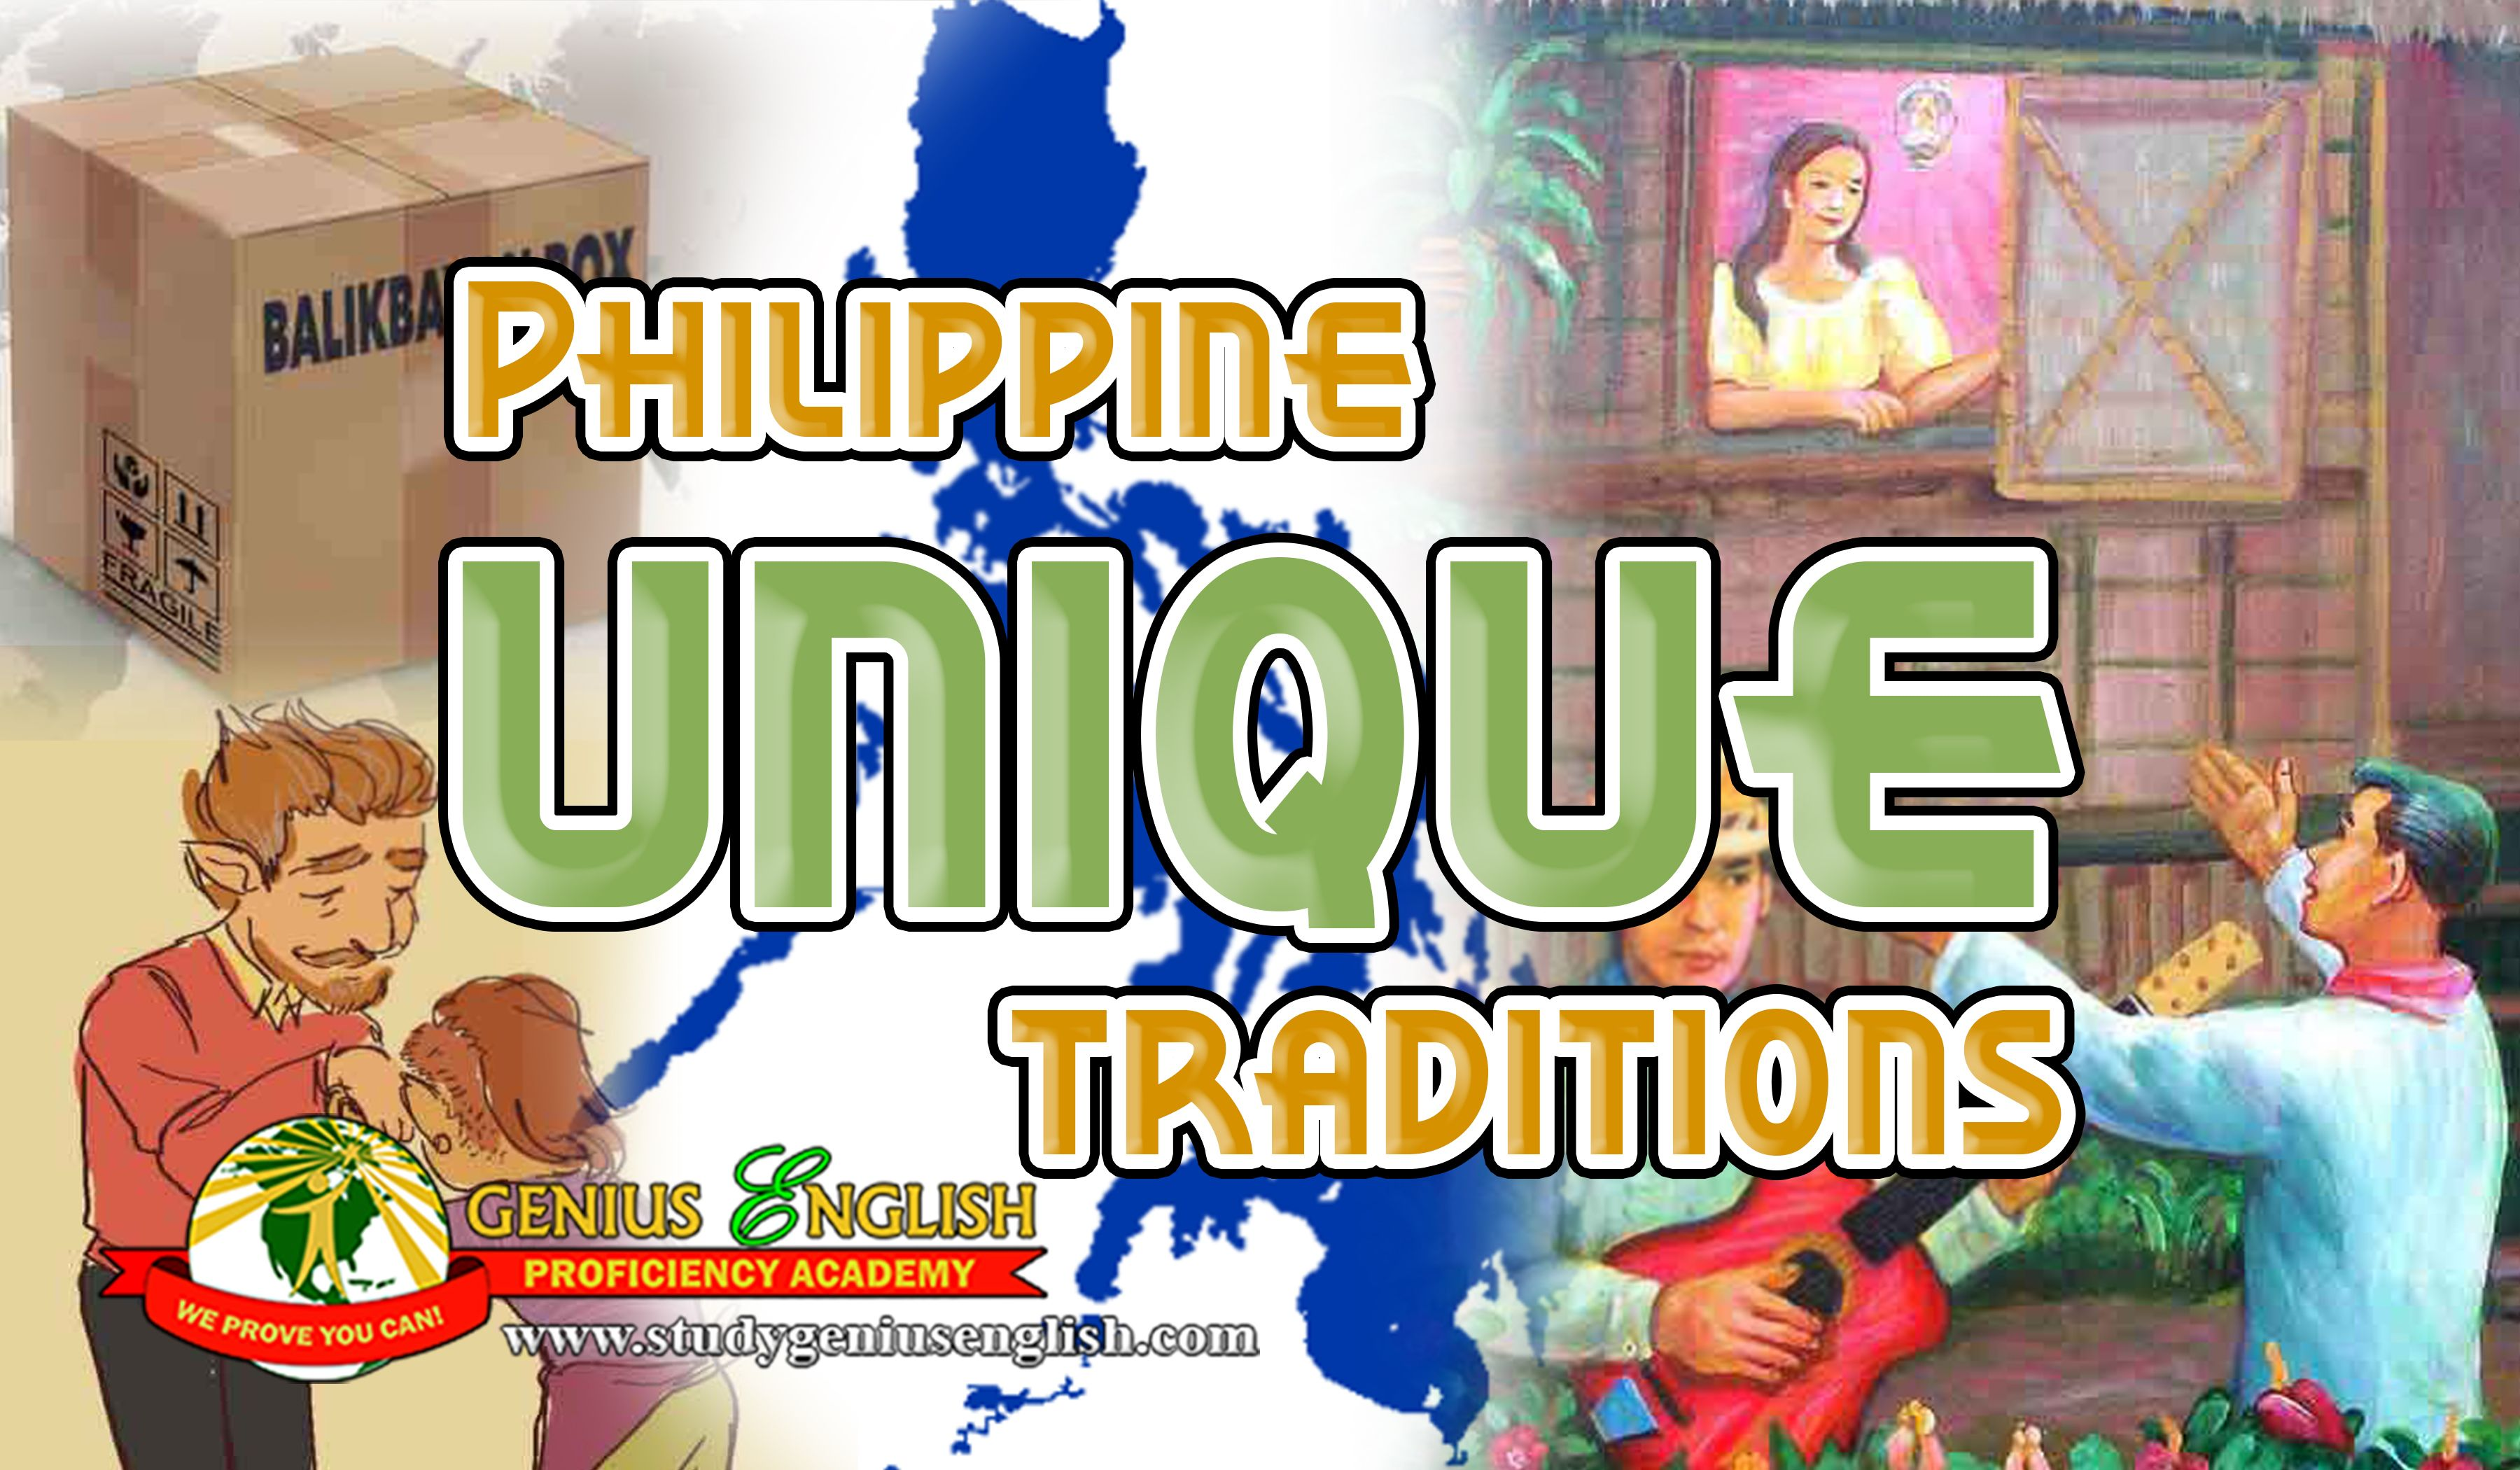 The philippines traditions